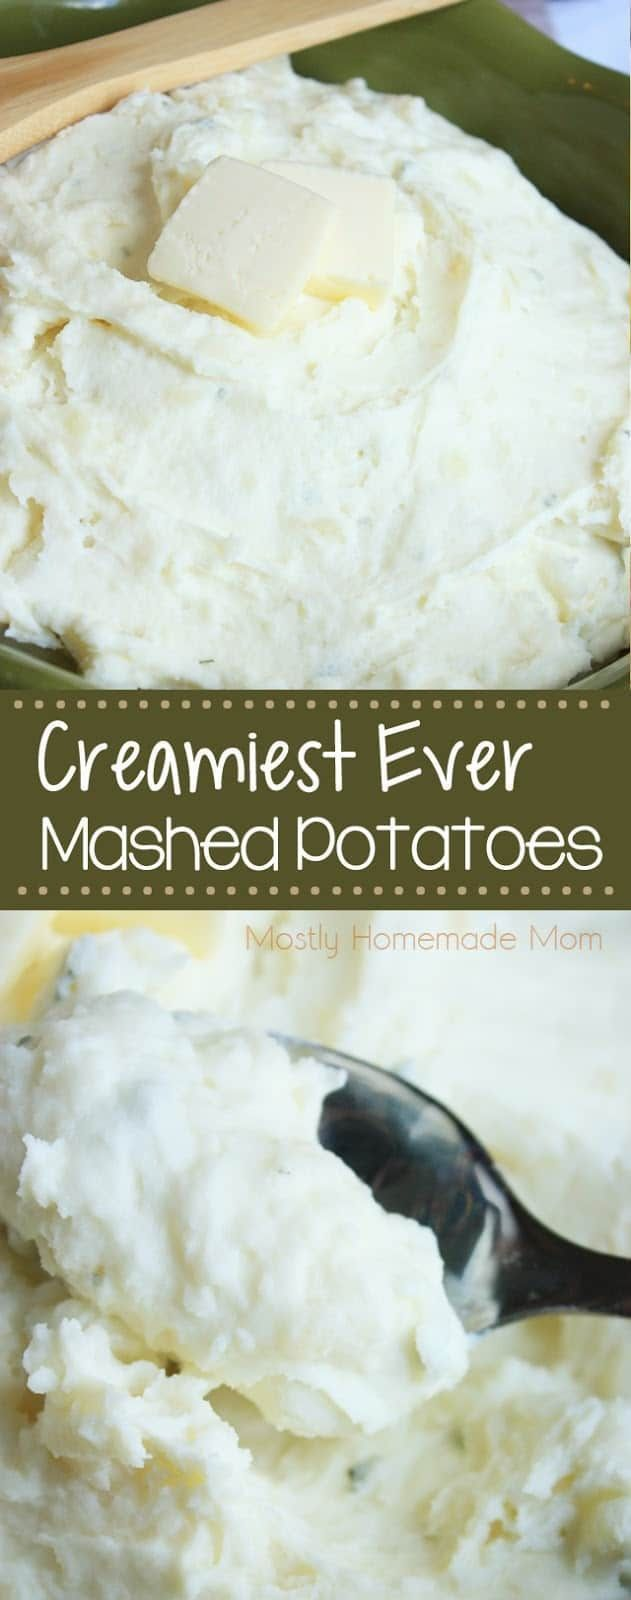 Creamy Mashed Potatoes Mostly Homemade Mom Recipe Creamy Mashed Potatoes Sour Cream Recipes Sour Cream Mashed Potatoes